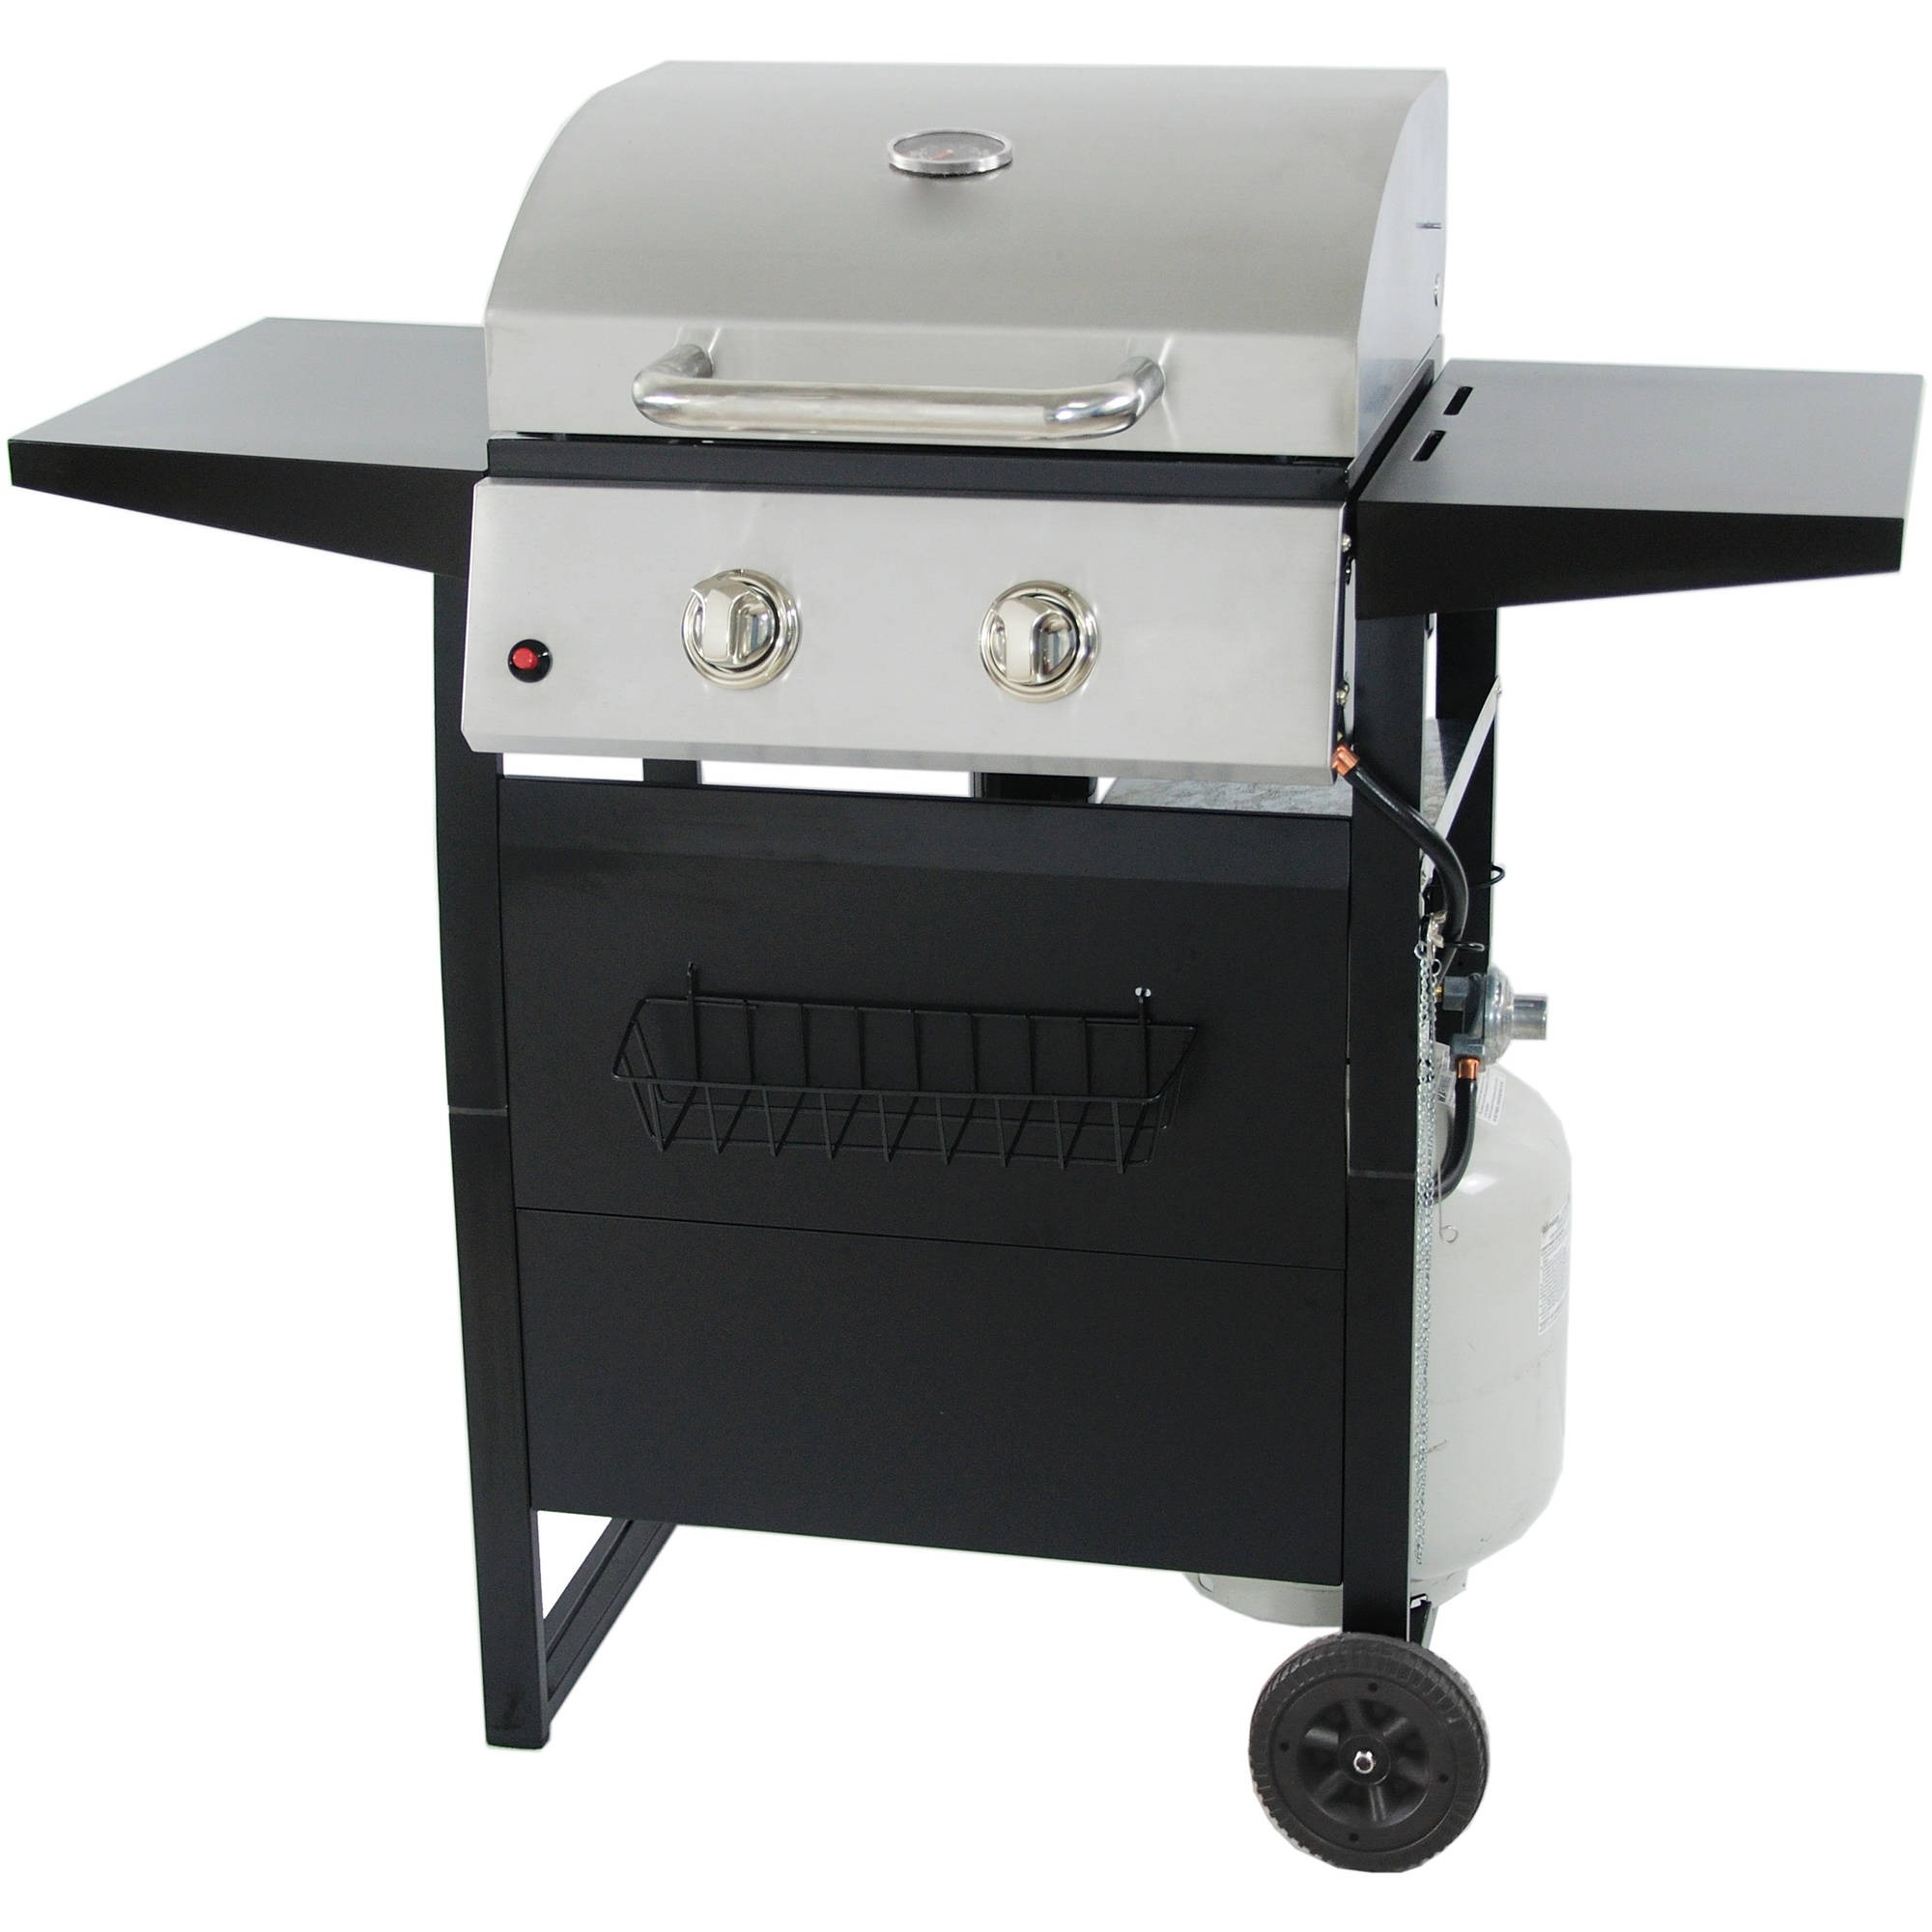 RevoAce 2-Burner Space Saver Gas Grill, Stainless Steel and Black, GBC1705WV